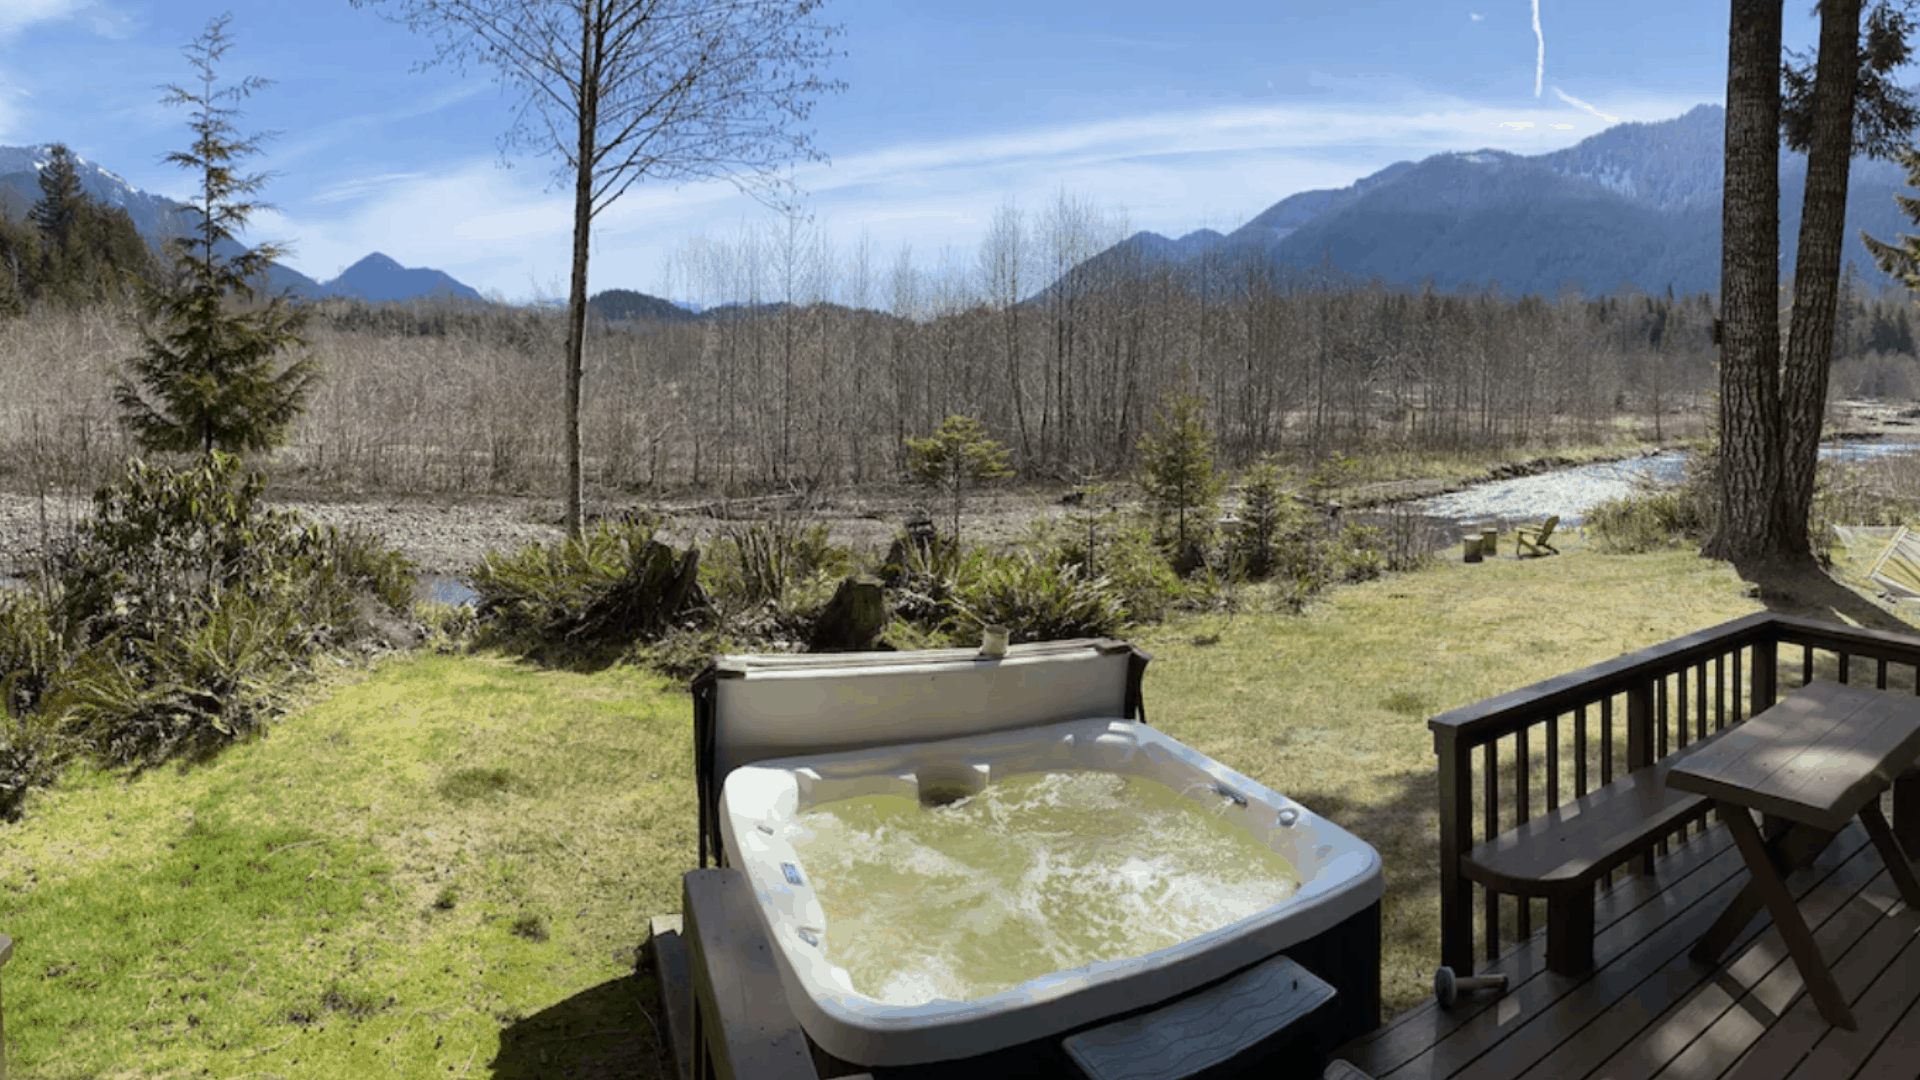 Outdoor hot tub with river view